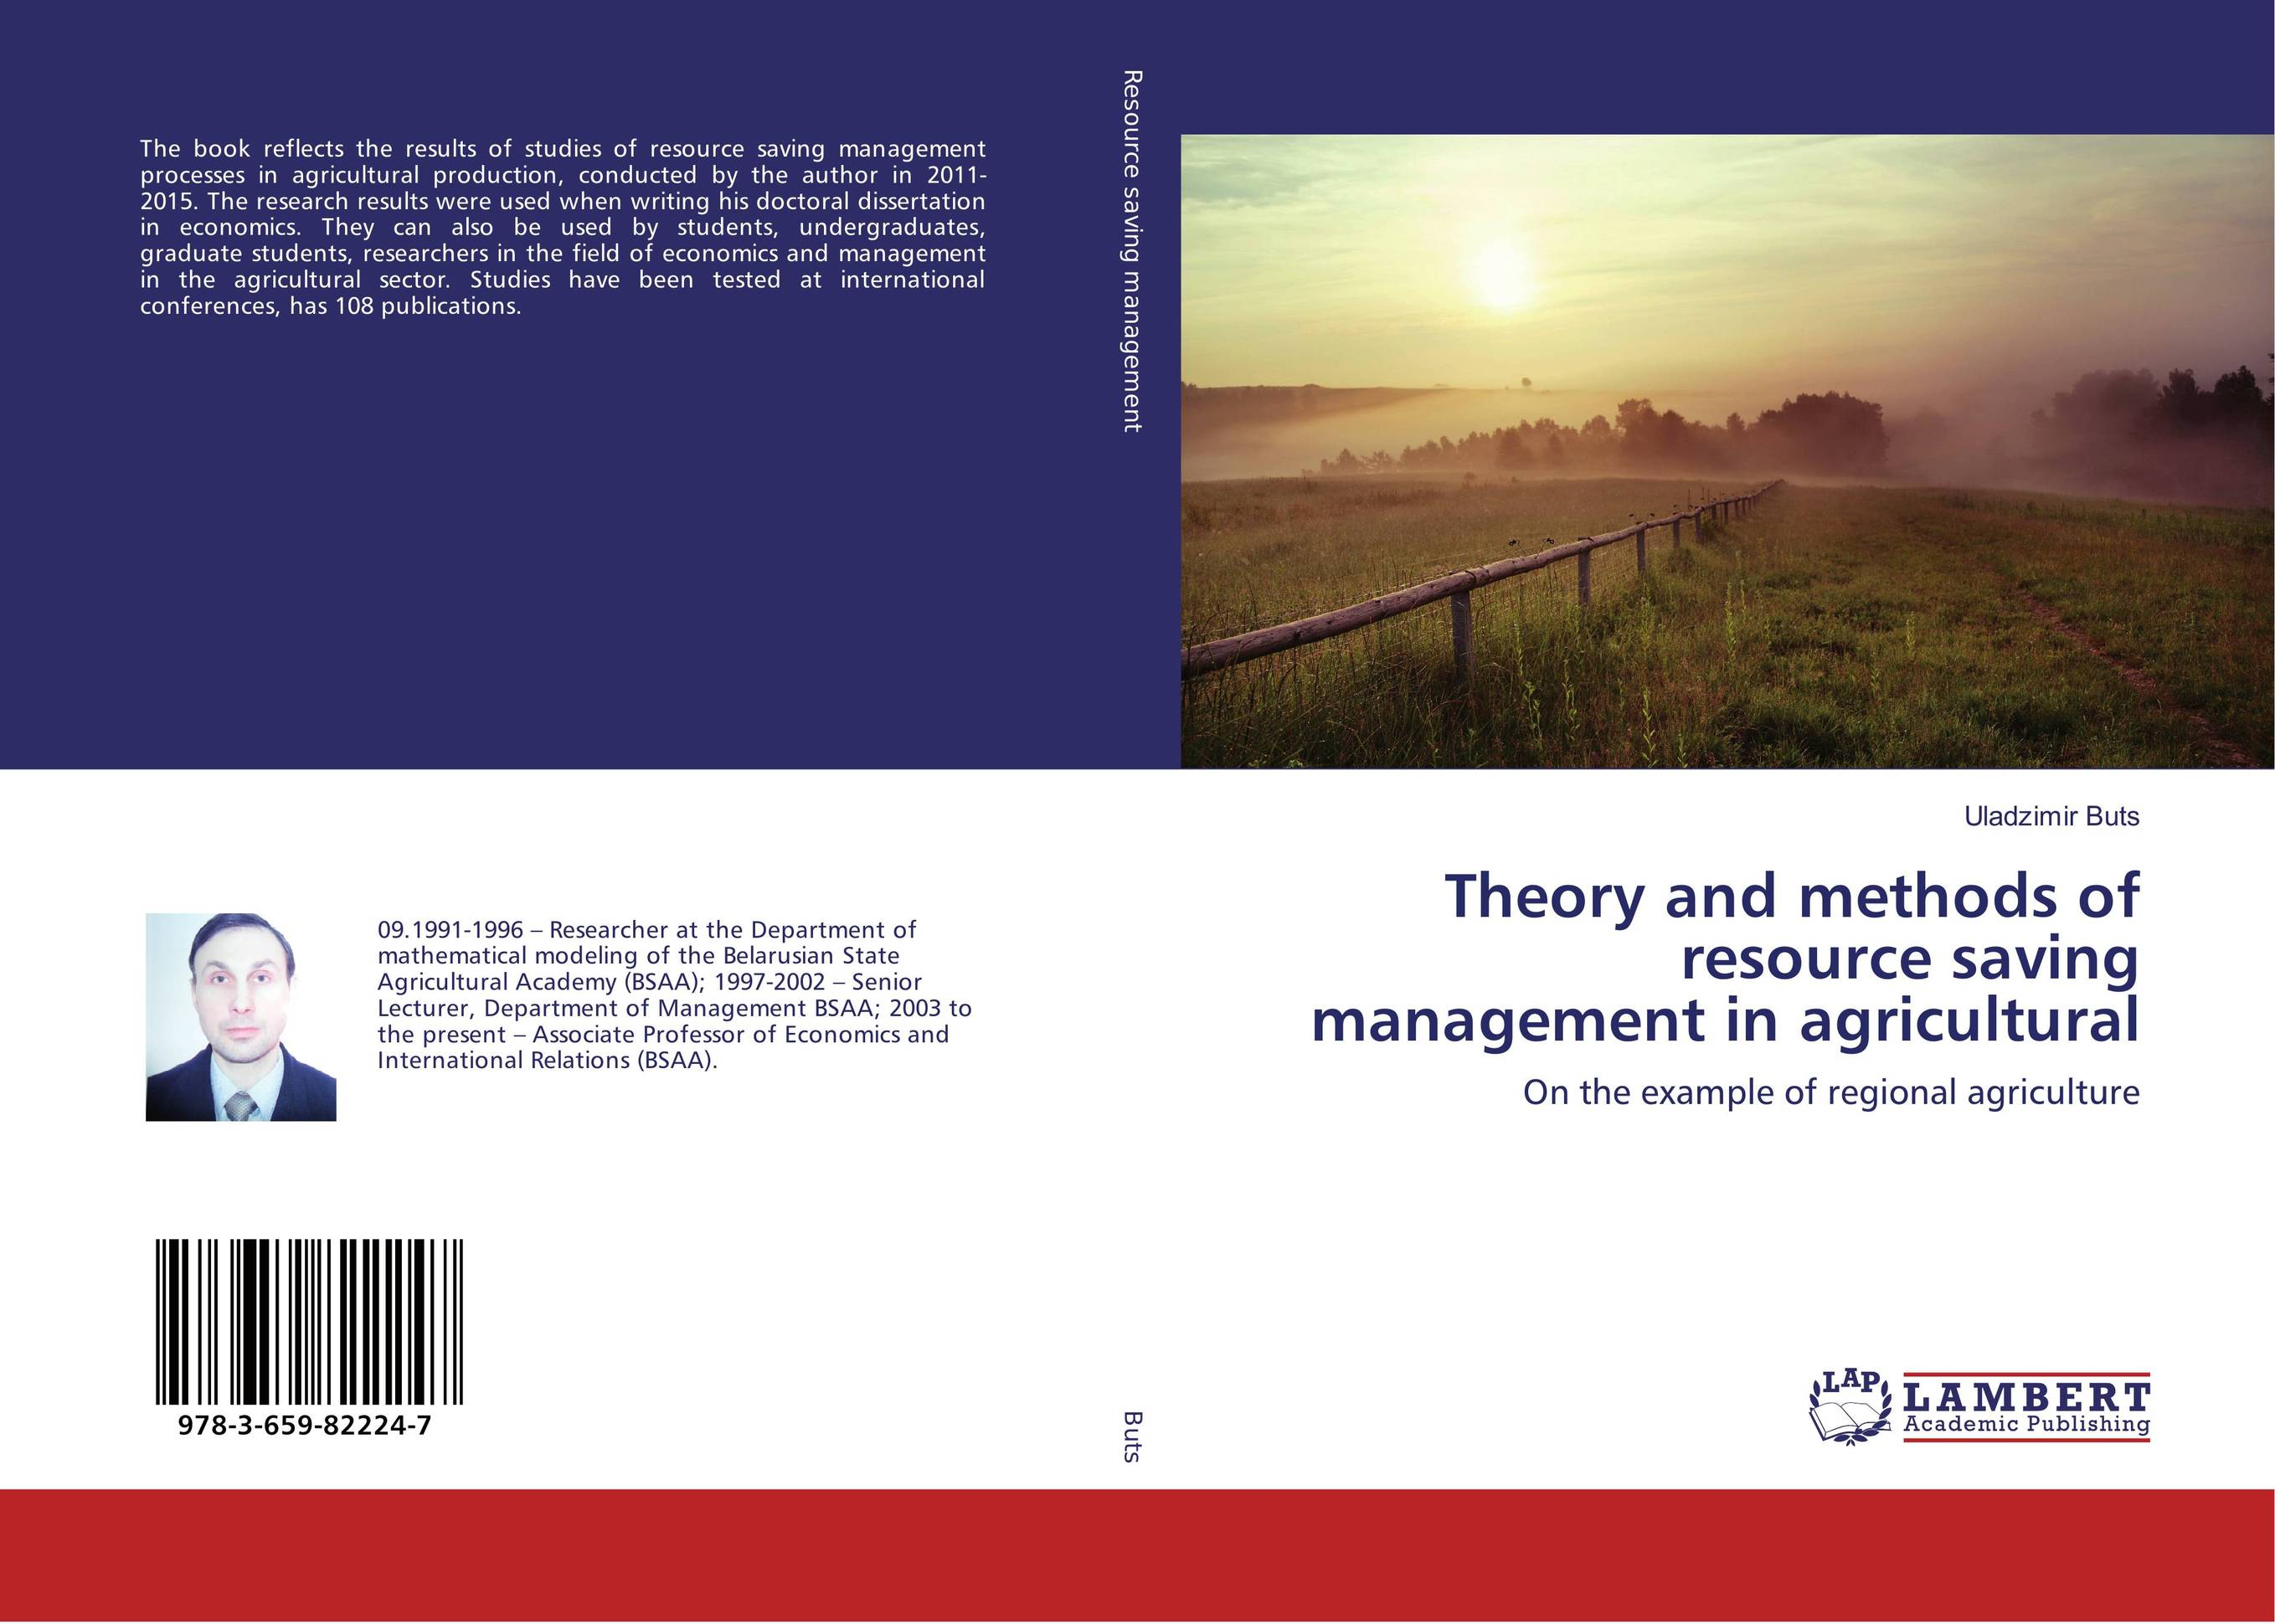 Theory and methods of resource saving management in agricultural production